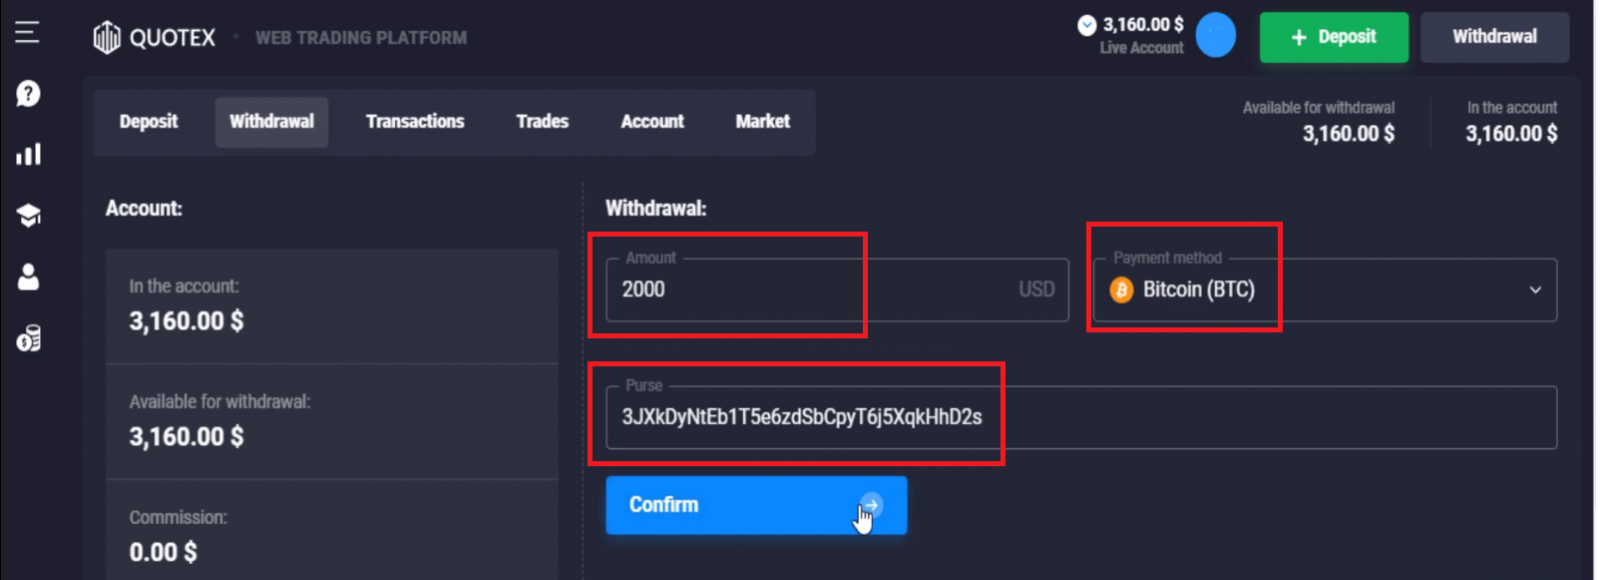 How to Trade at Quotex for Beginners